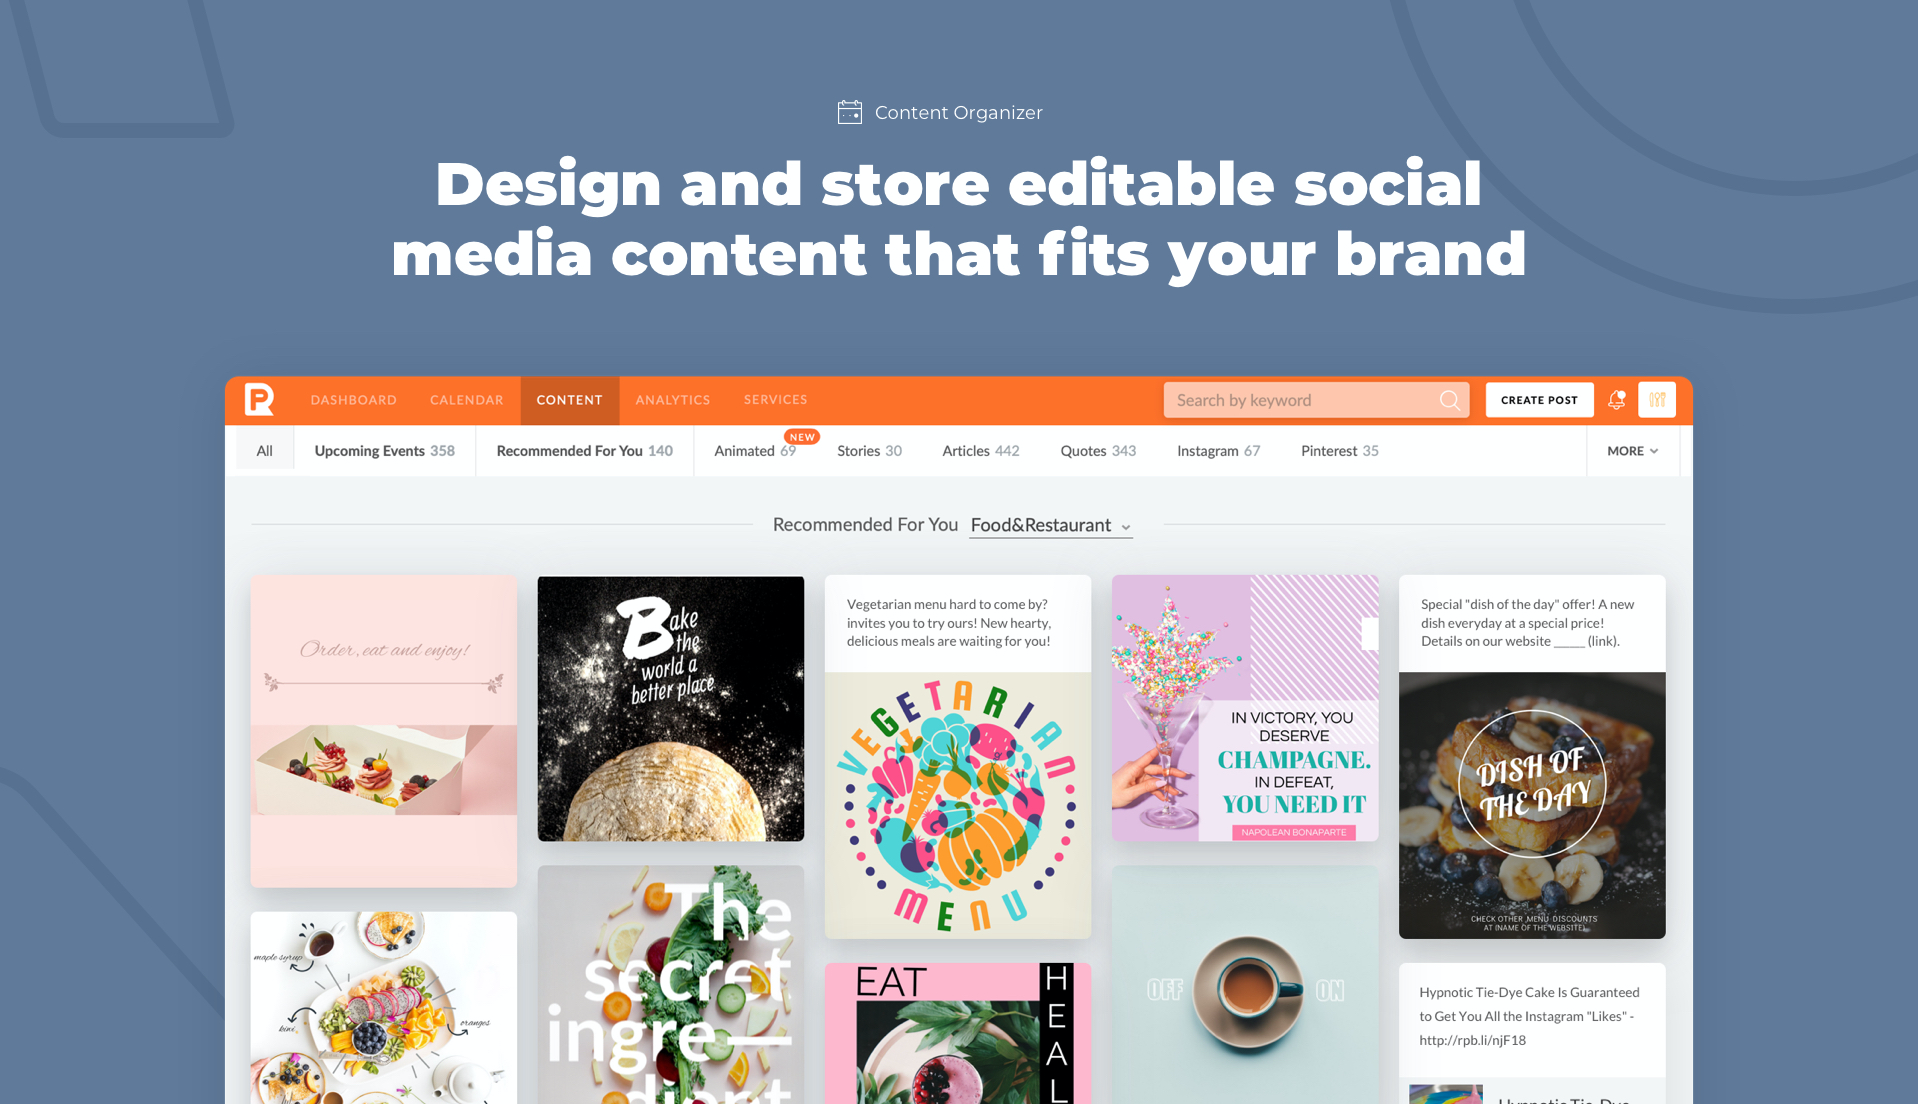 Design and store editable content that fits your brand